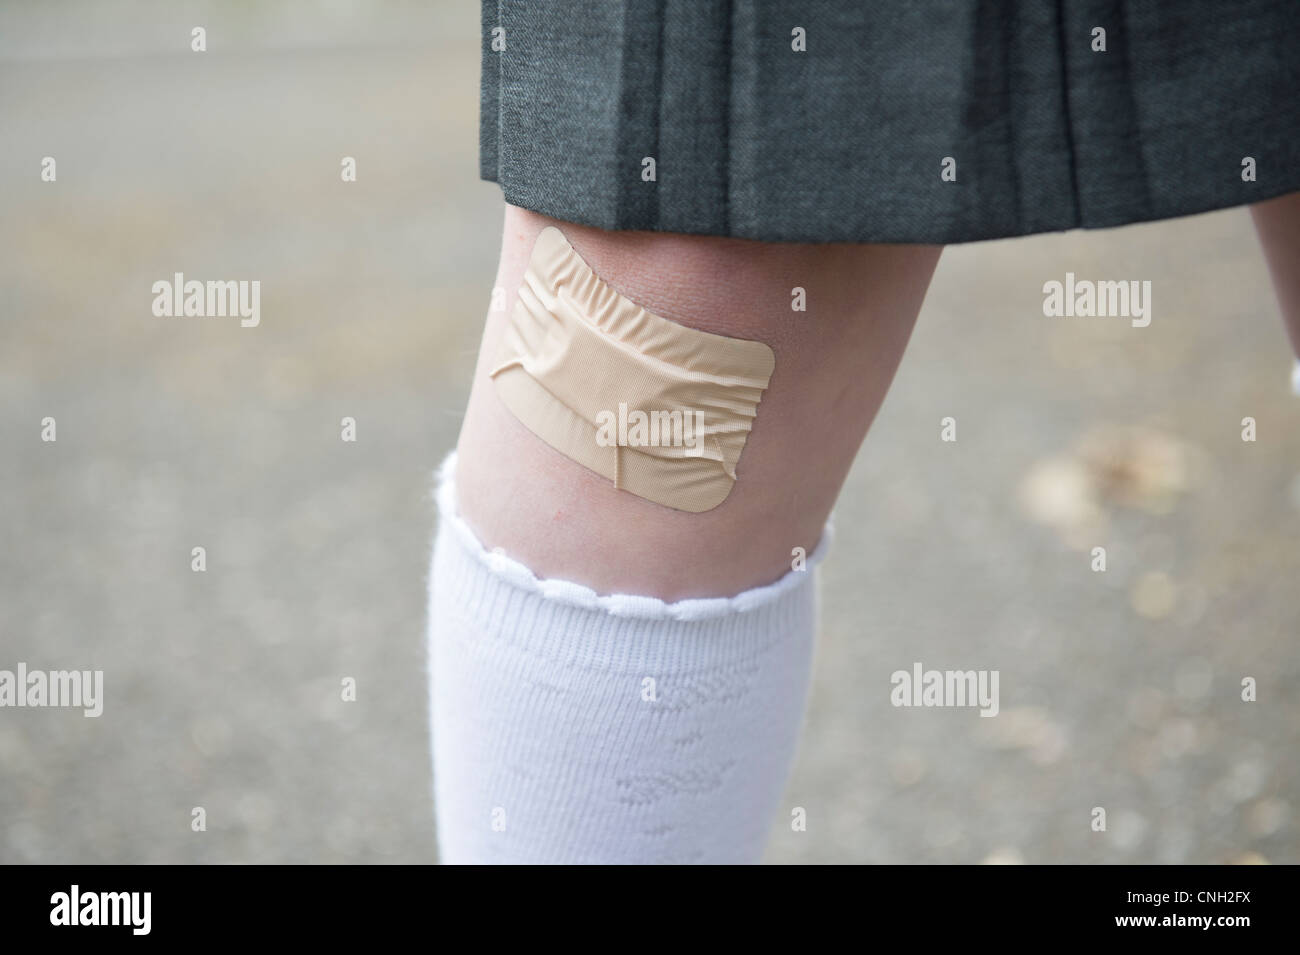 Schoolgirl's knee with a sticking plaster over a cut. Stock Foto